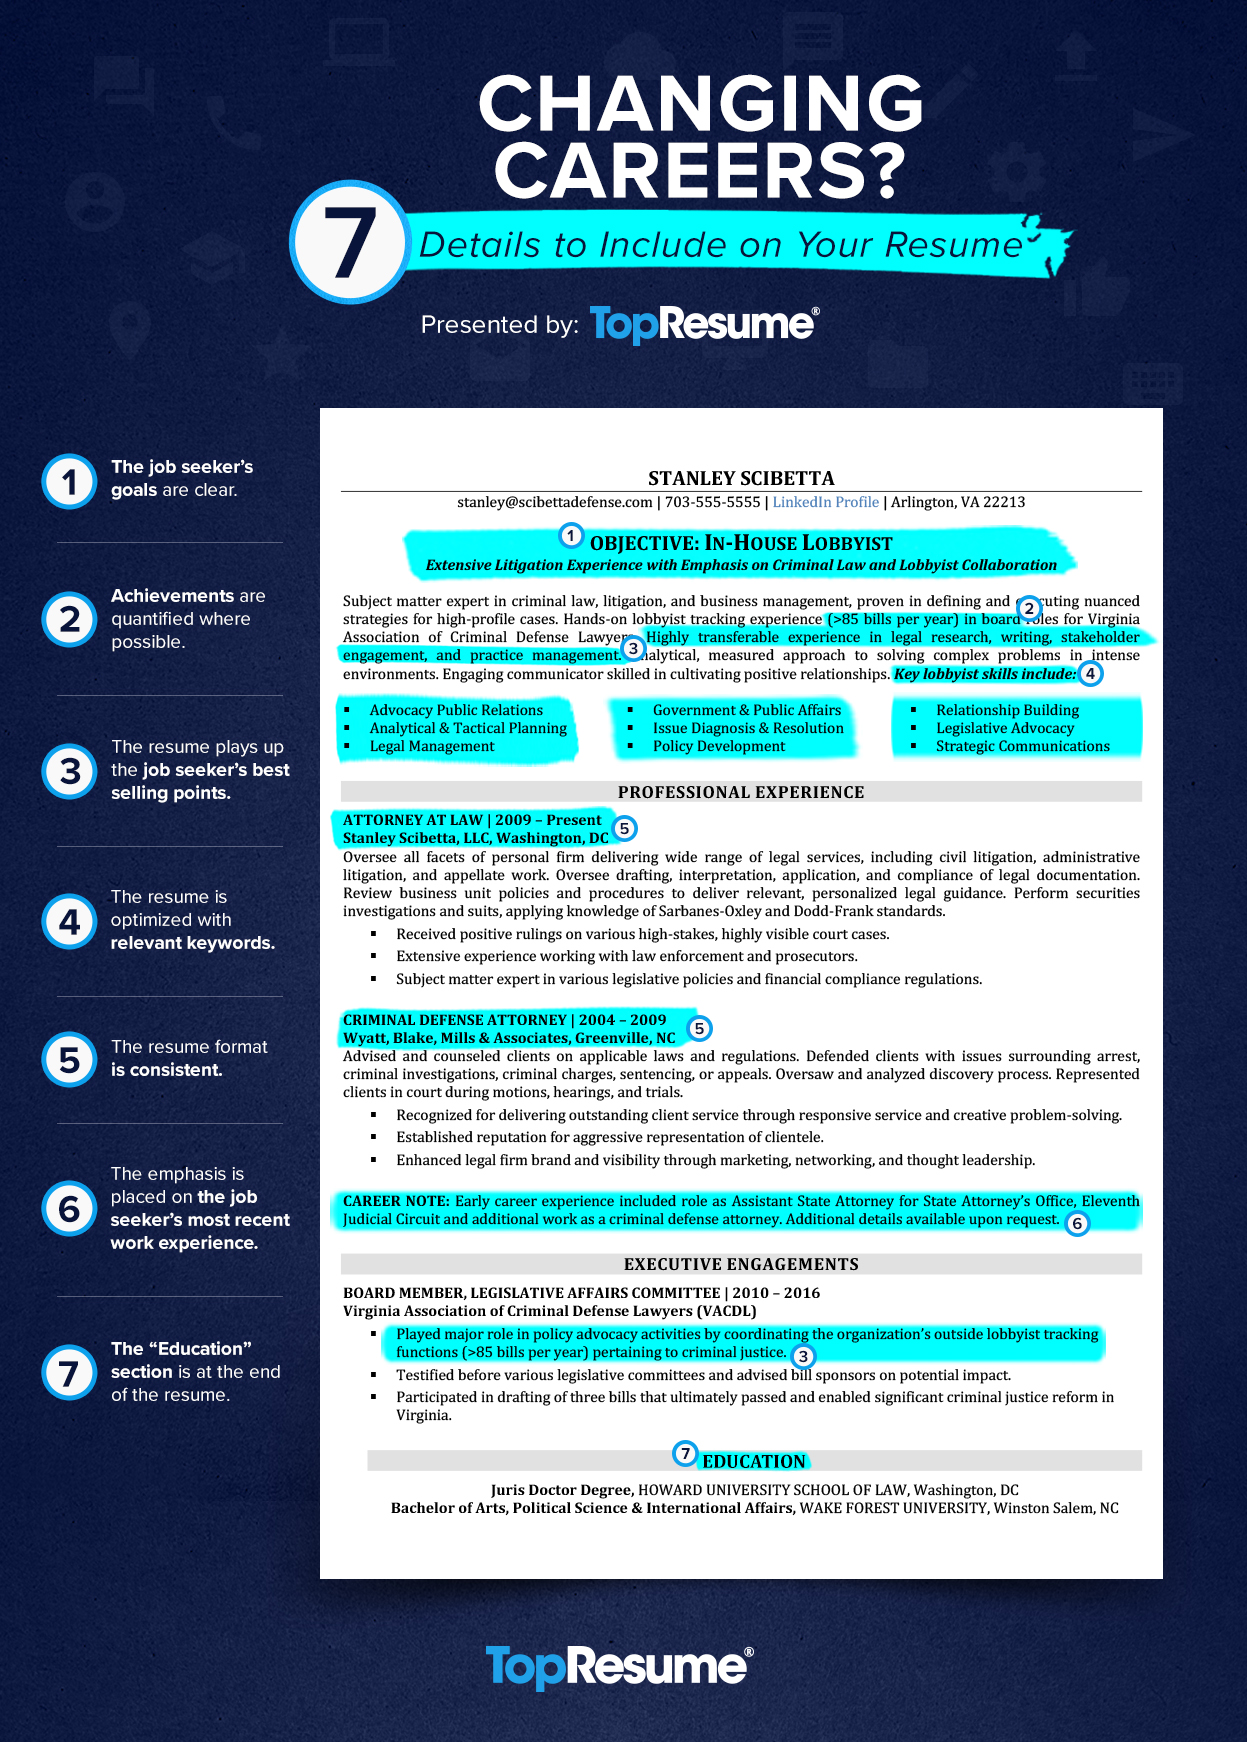 Career Change Resume Sample Changing Careers 7 Details To Include On Your Resume Topresume